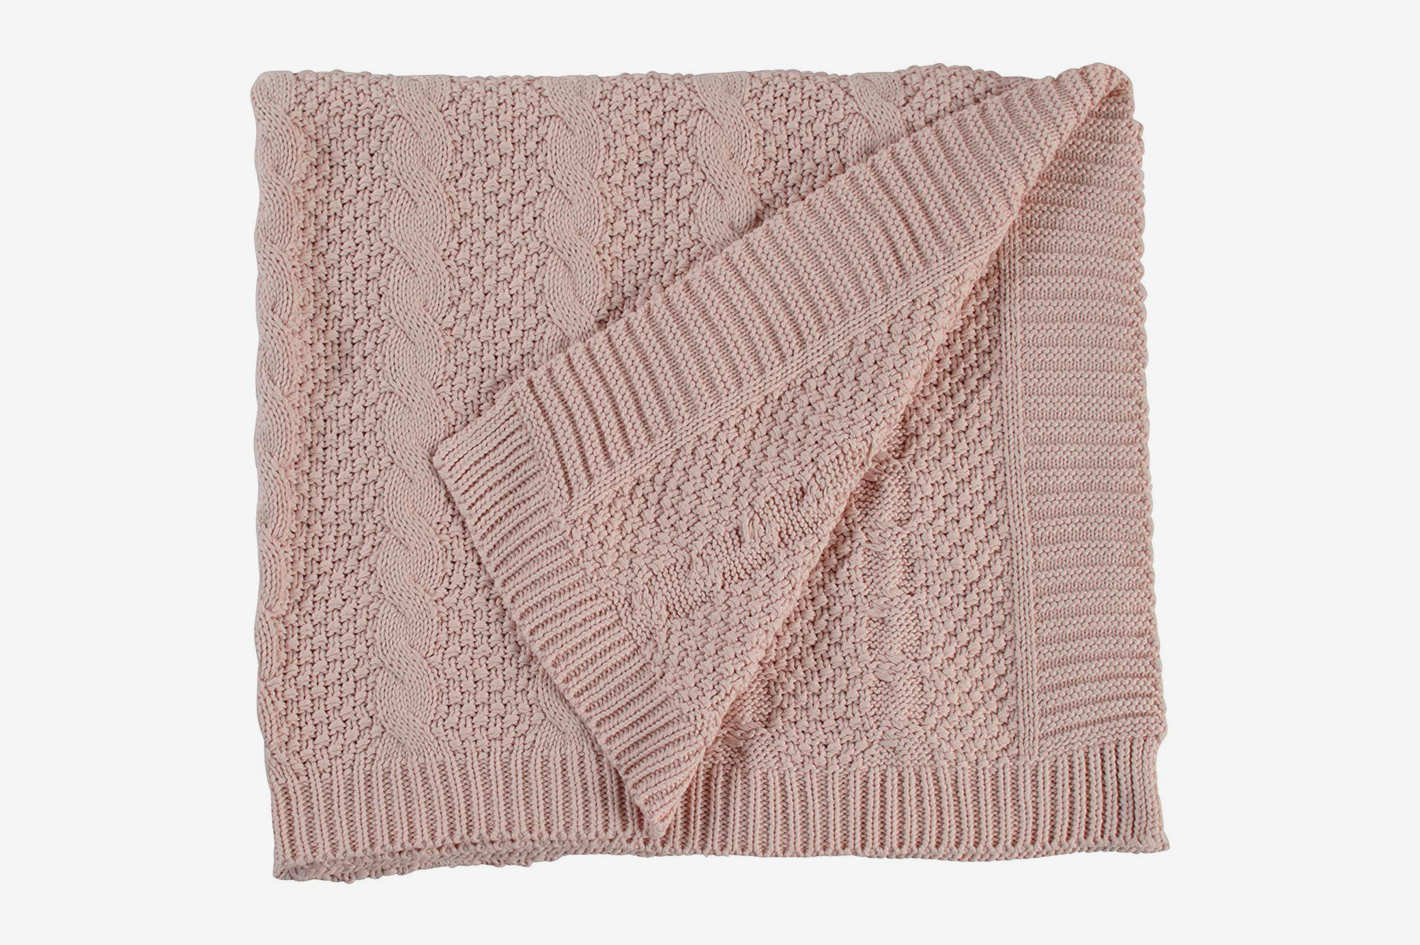 "Stone & Beam Transitional Chunky Cable Knit Throw, 70"" x 40"", Blush"